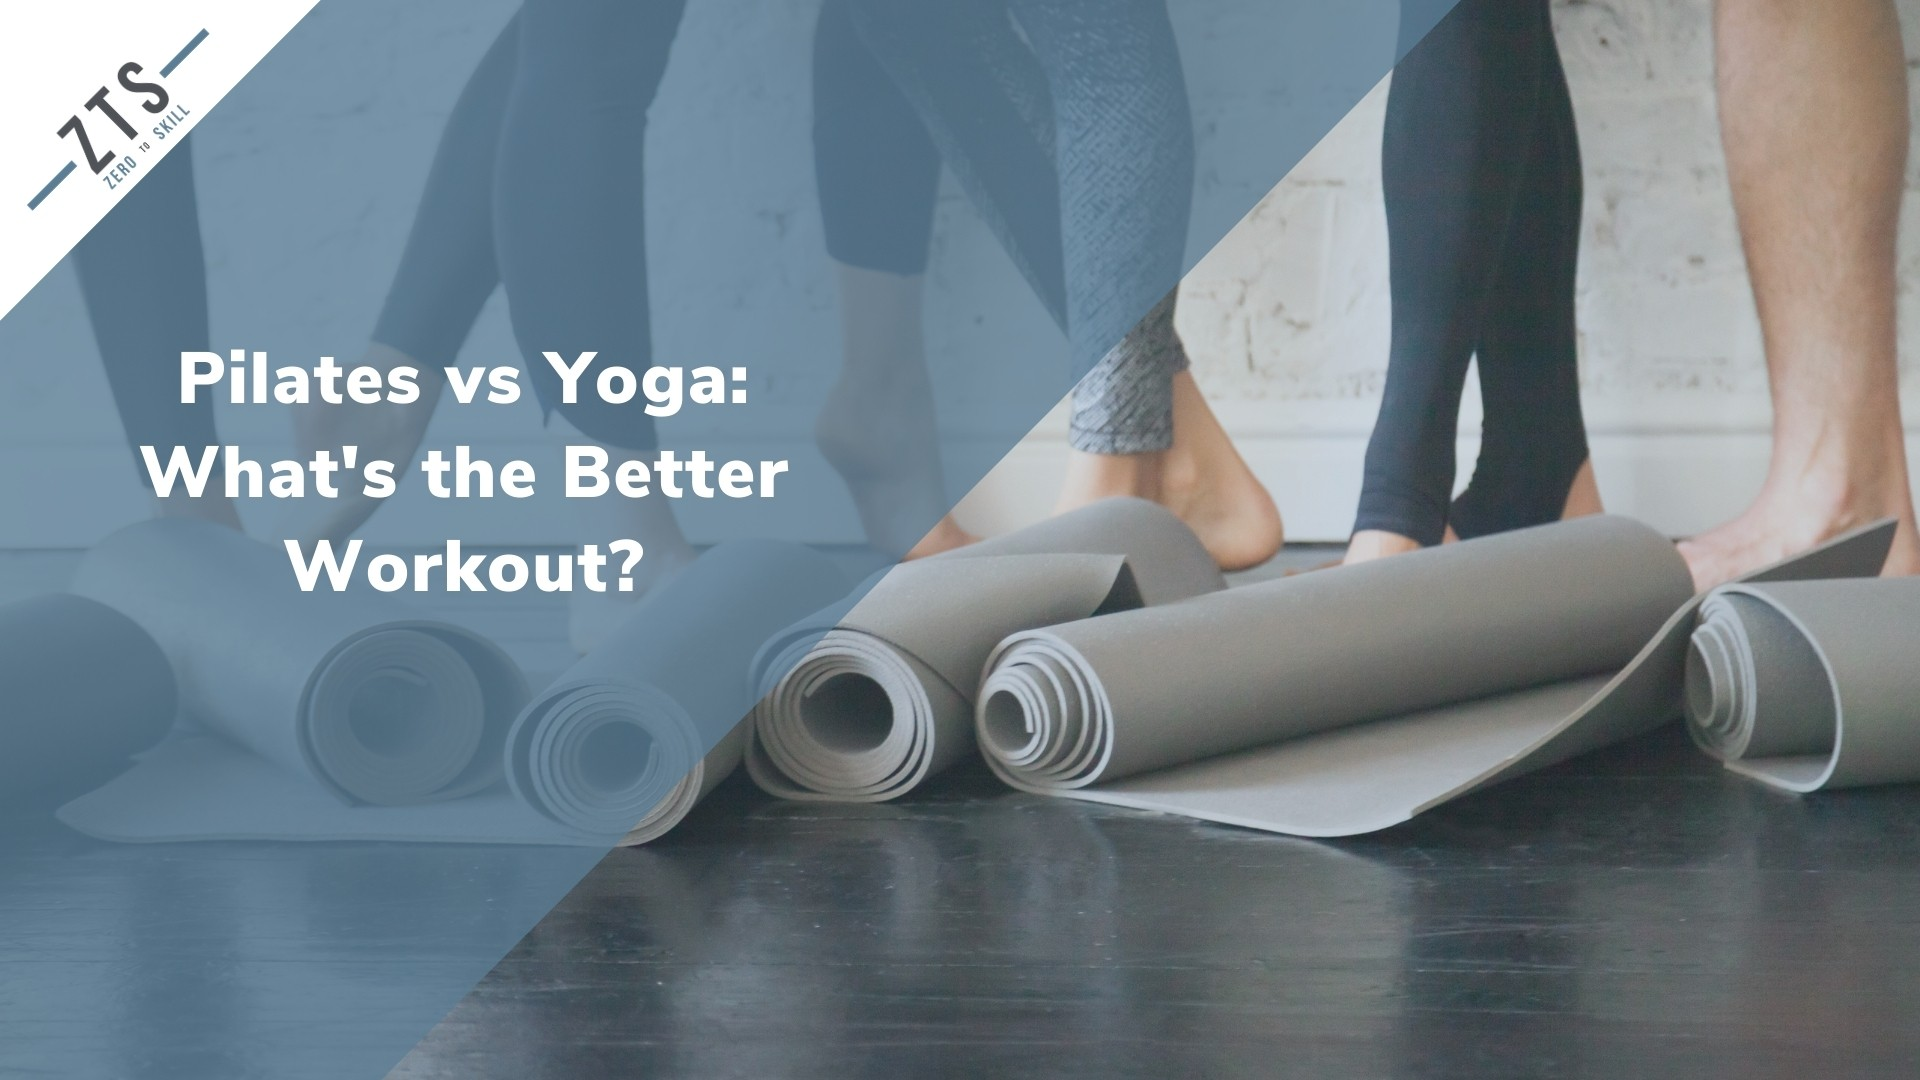 Pilates vs Yoga: What's the Better Workout?